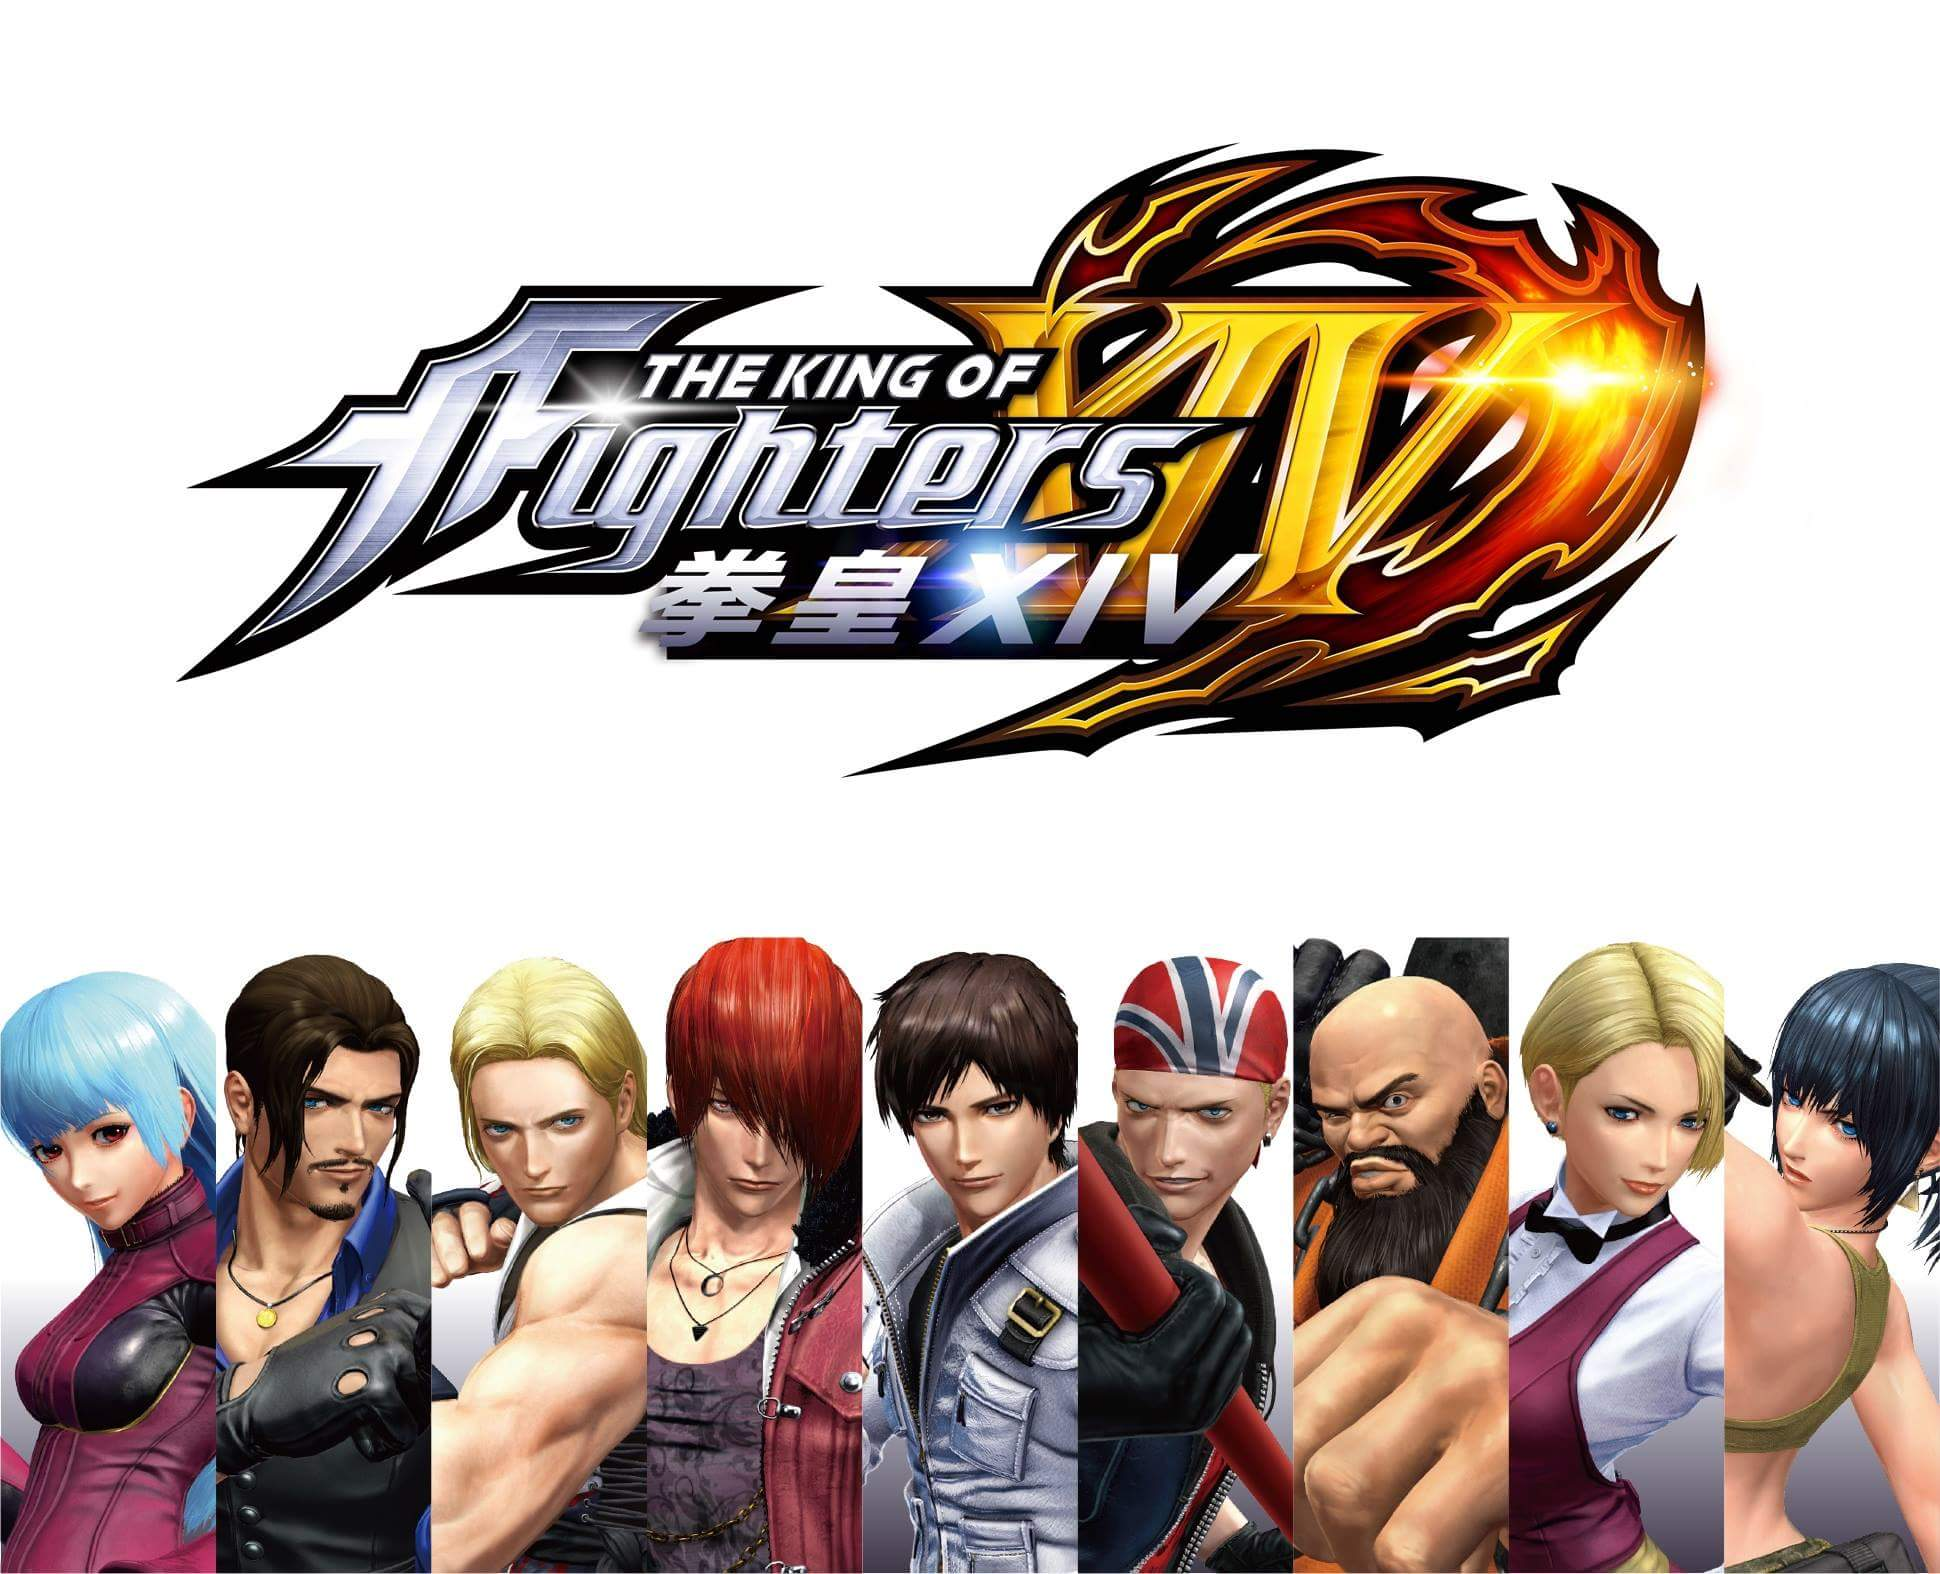 Next date for #KOFXIV, MIG WB Replays #KOFXIII